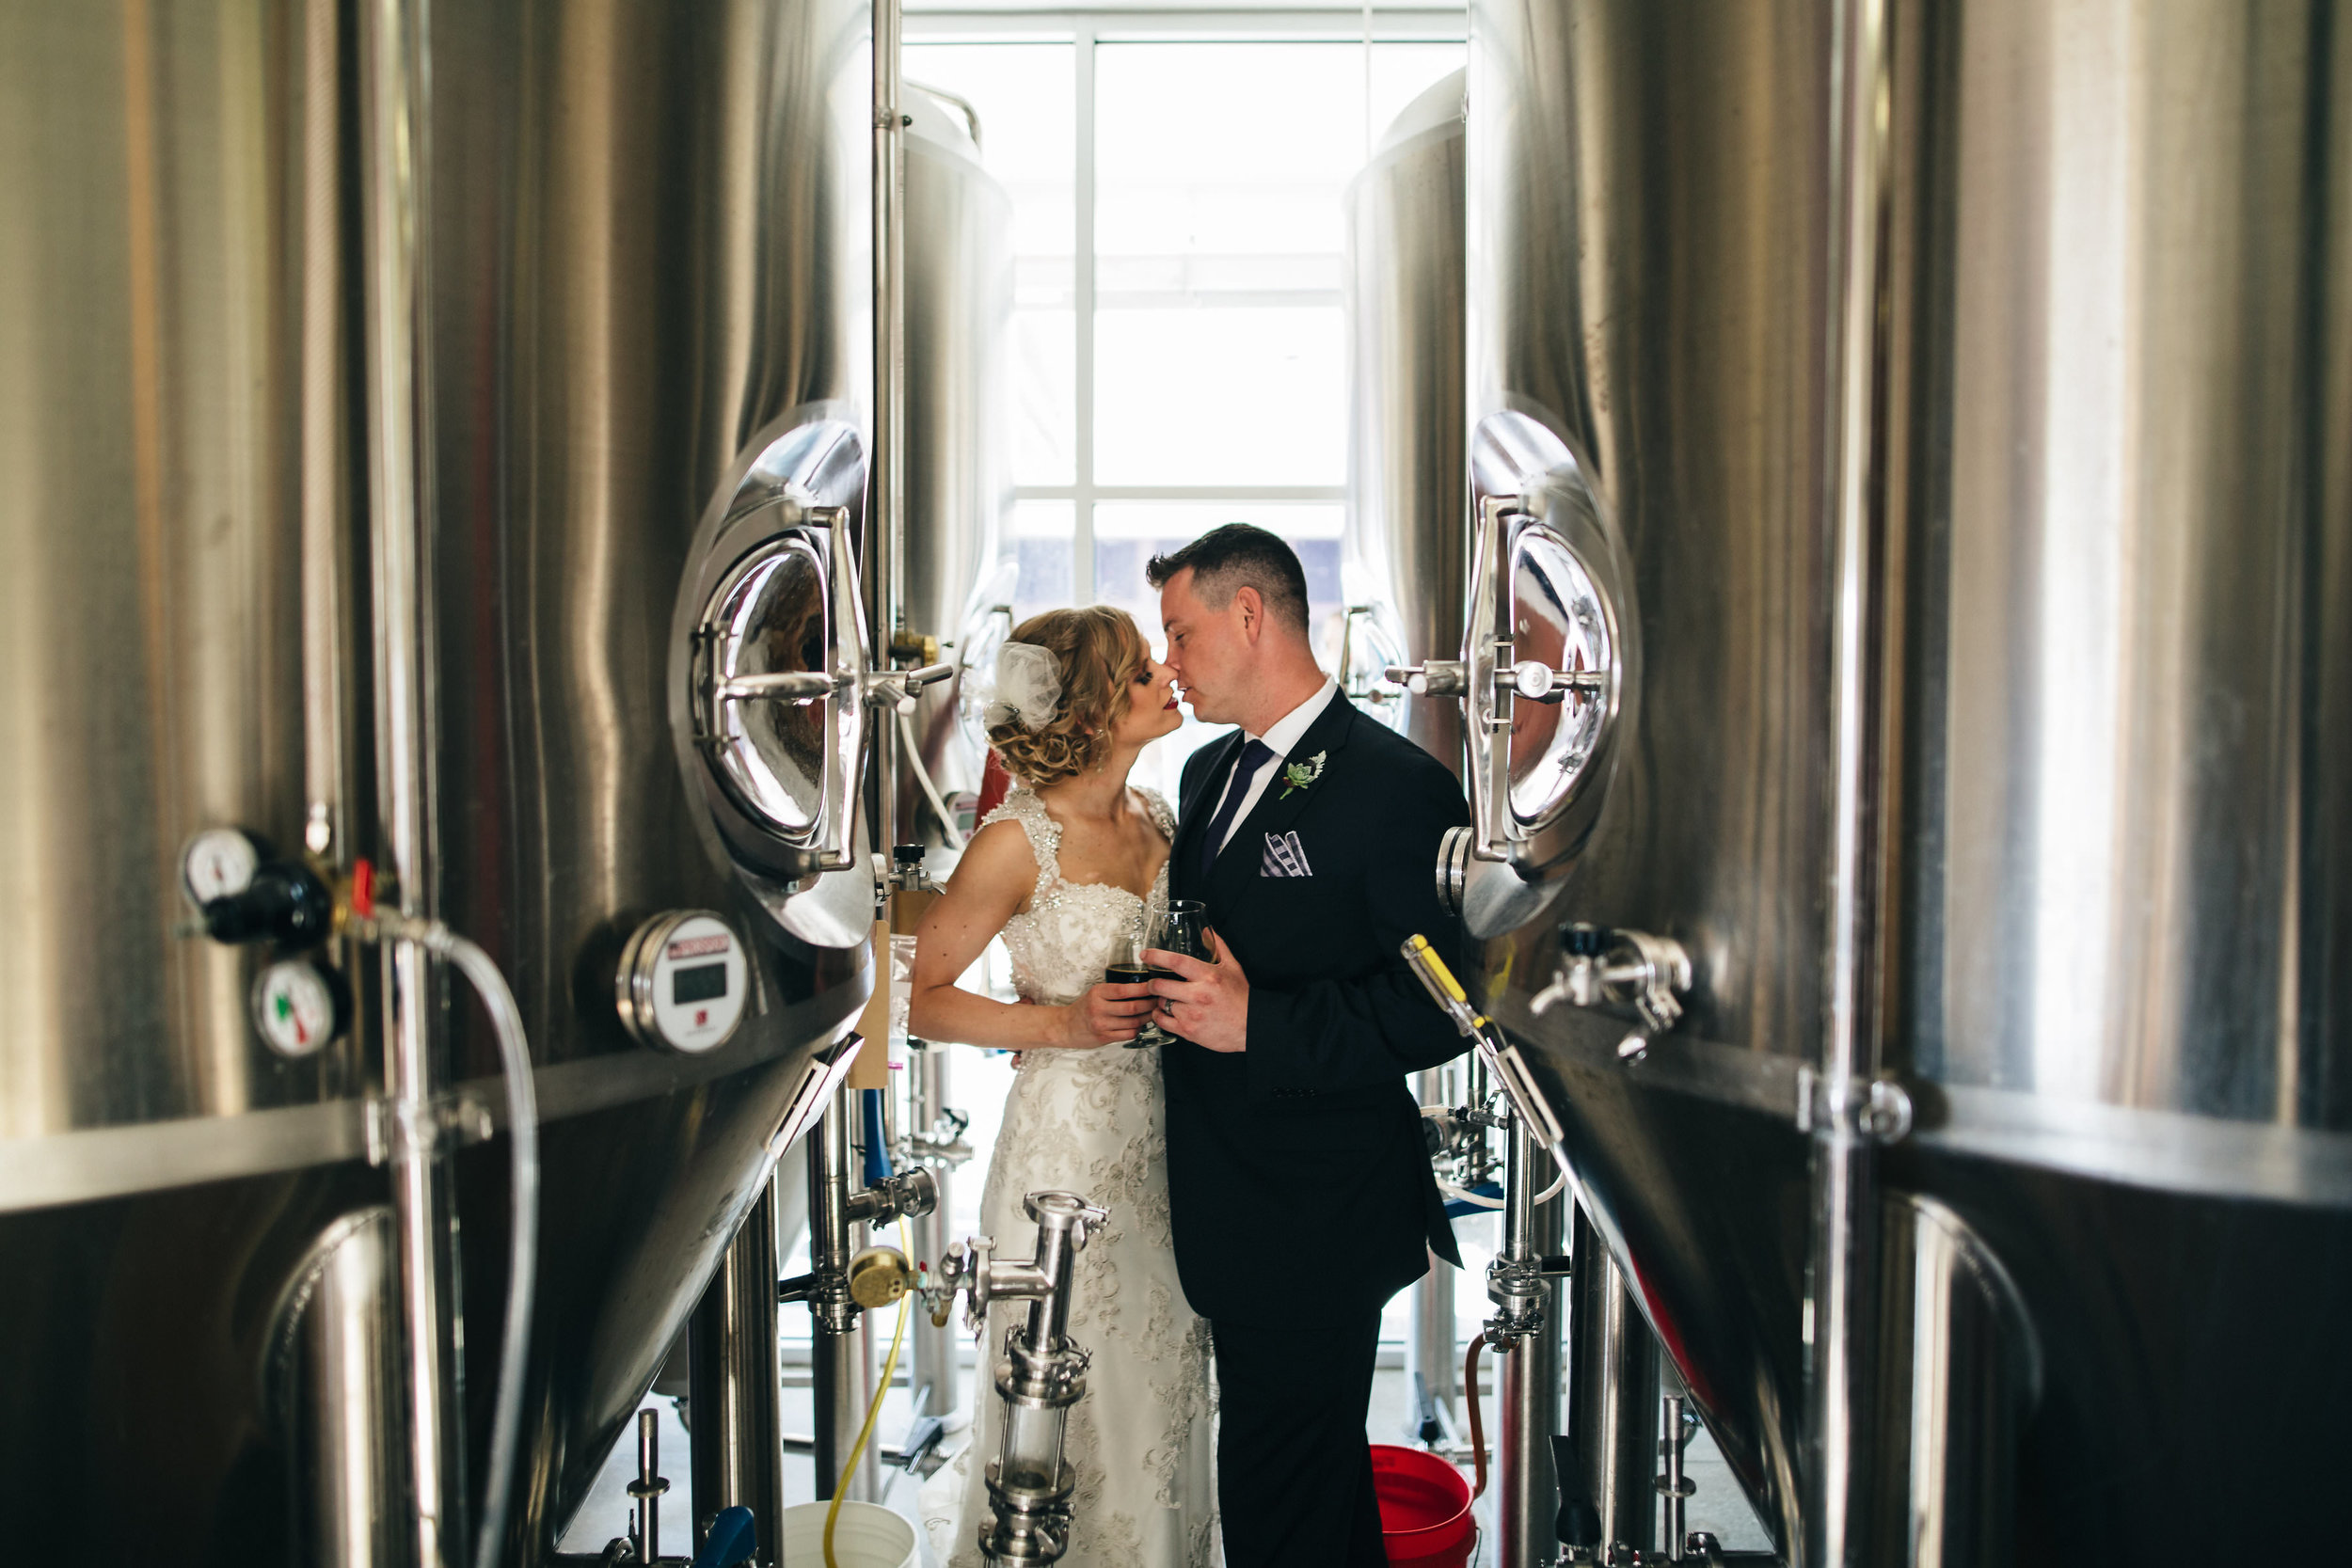 Bride and groom kissing at local brewery